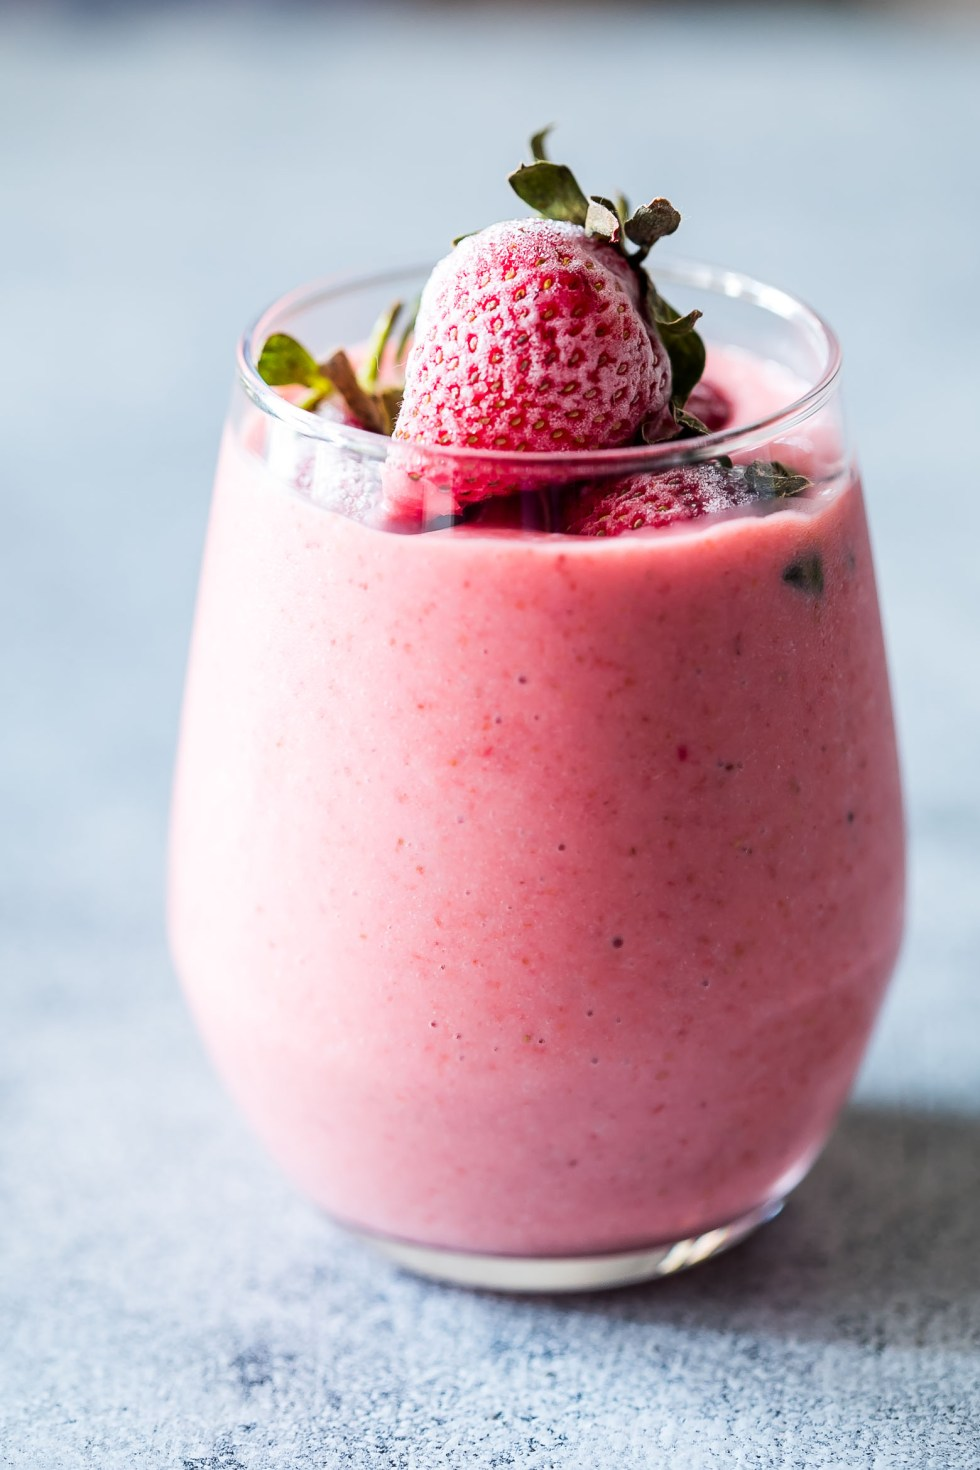 Frozen strawberry greek yogurt smoothie is thick, creamy and utterly delicious! This strawberry smoothie with yogurt is the perfect protein and nutrient rich 10 minute breakfast for busy days.